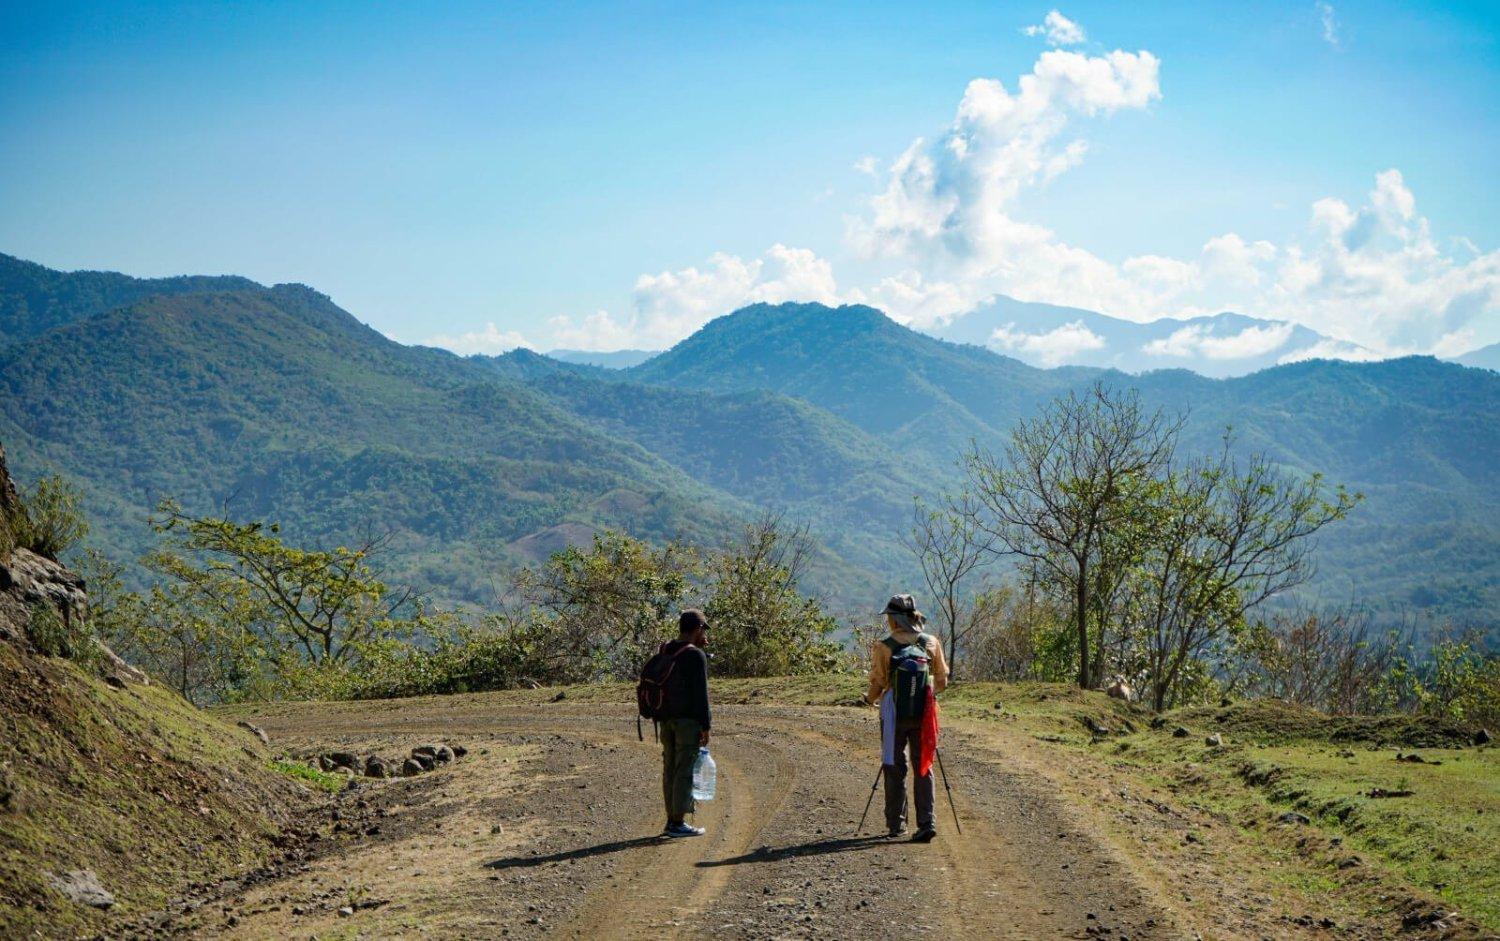 Fidel's Comandancia de la Plata is somehwere out there in the distance. One of our first views of the heart of the Sierra Maestra Mountains.